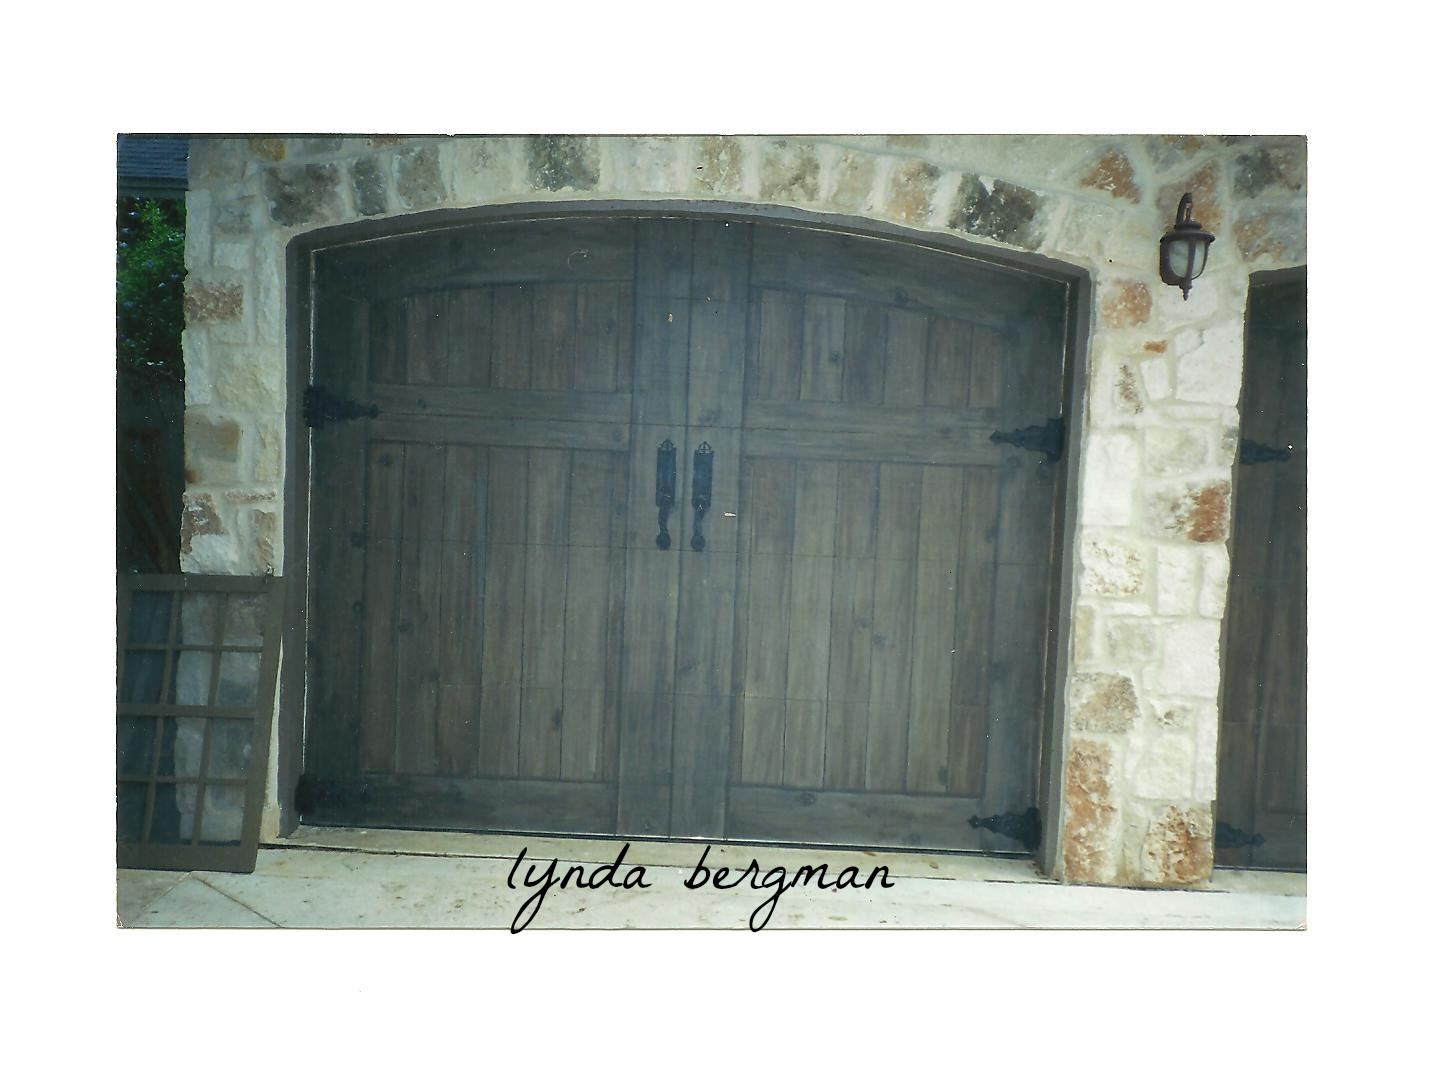 Lynda bergman decorative artisan trompe l 39 oeil garage for Faux painted garage doors